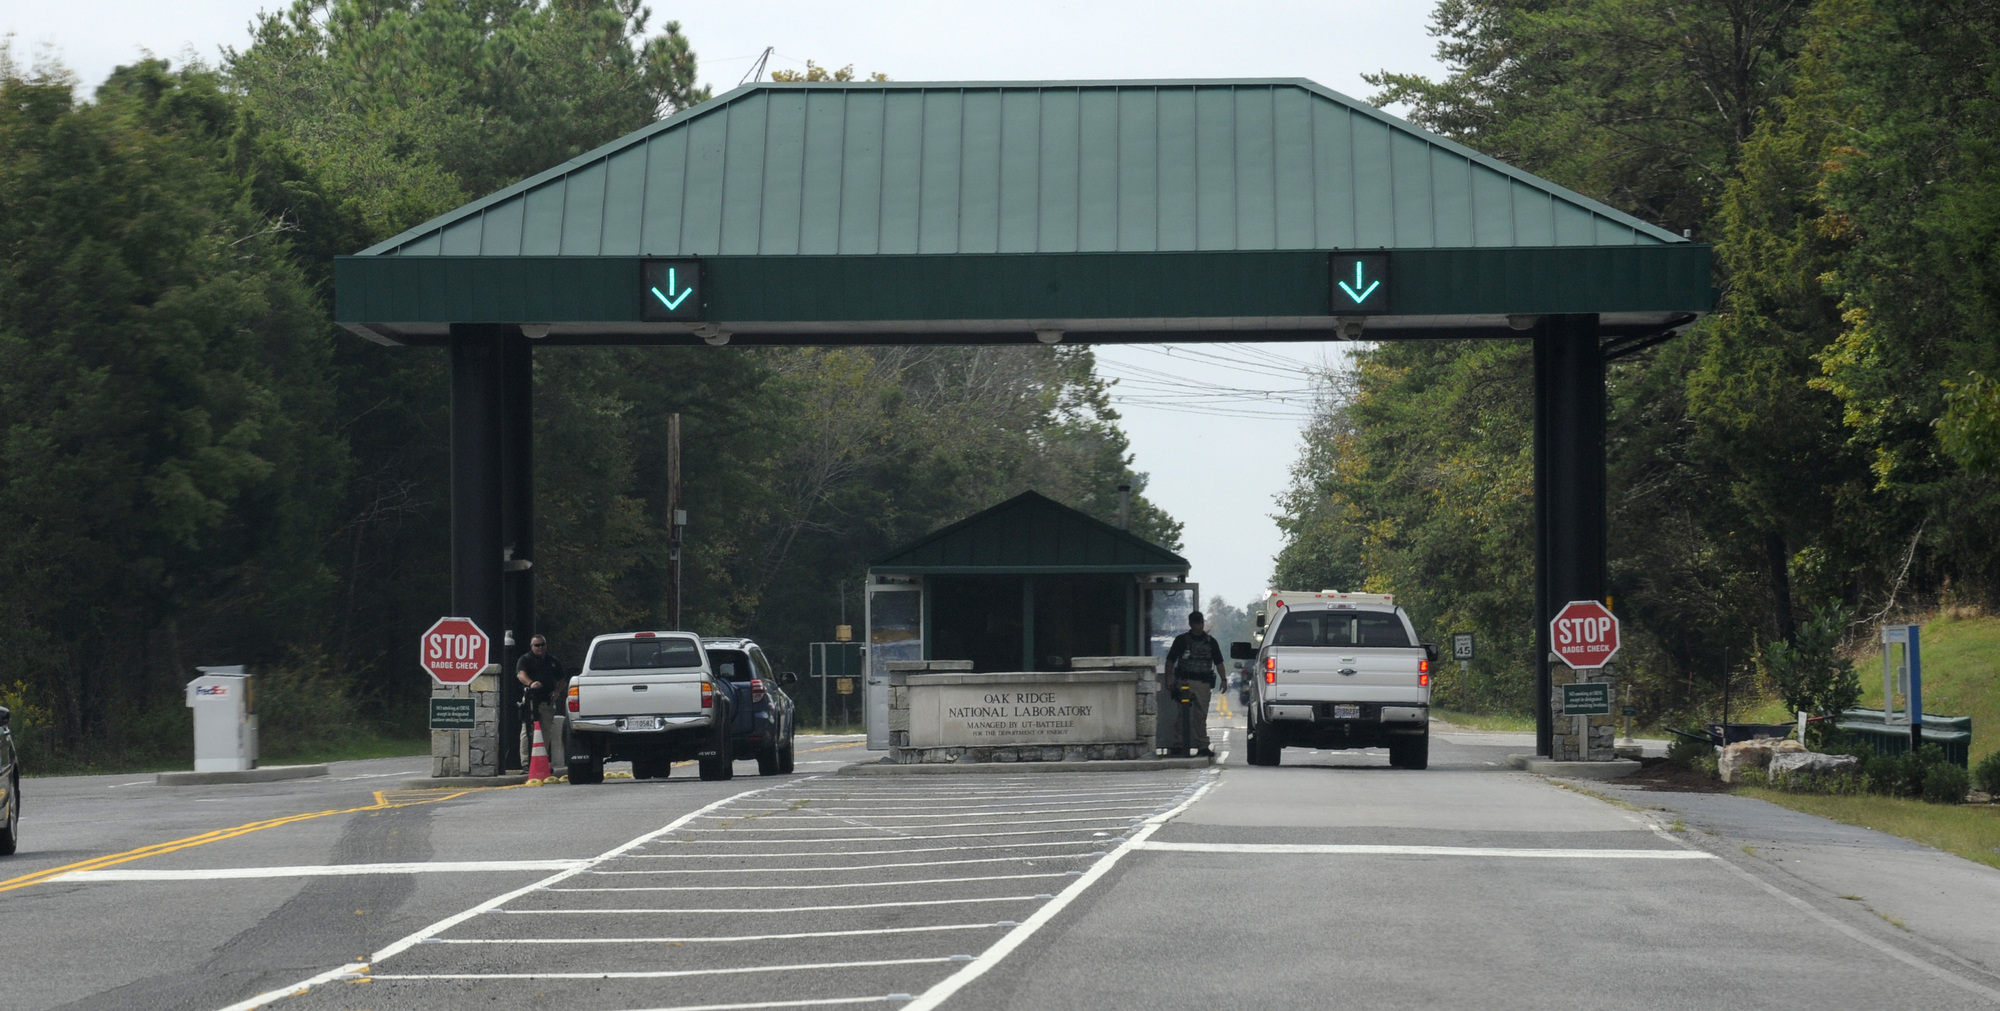 East portal to the Oak Ridge National Laboratory Tuesday, Sep. 30, 2014. (MICHAEL PATRICK/NEWS SENTINEL)